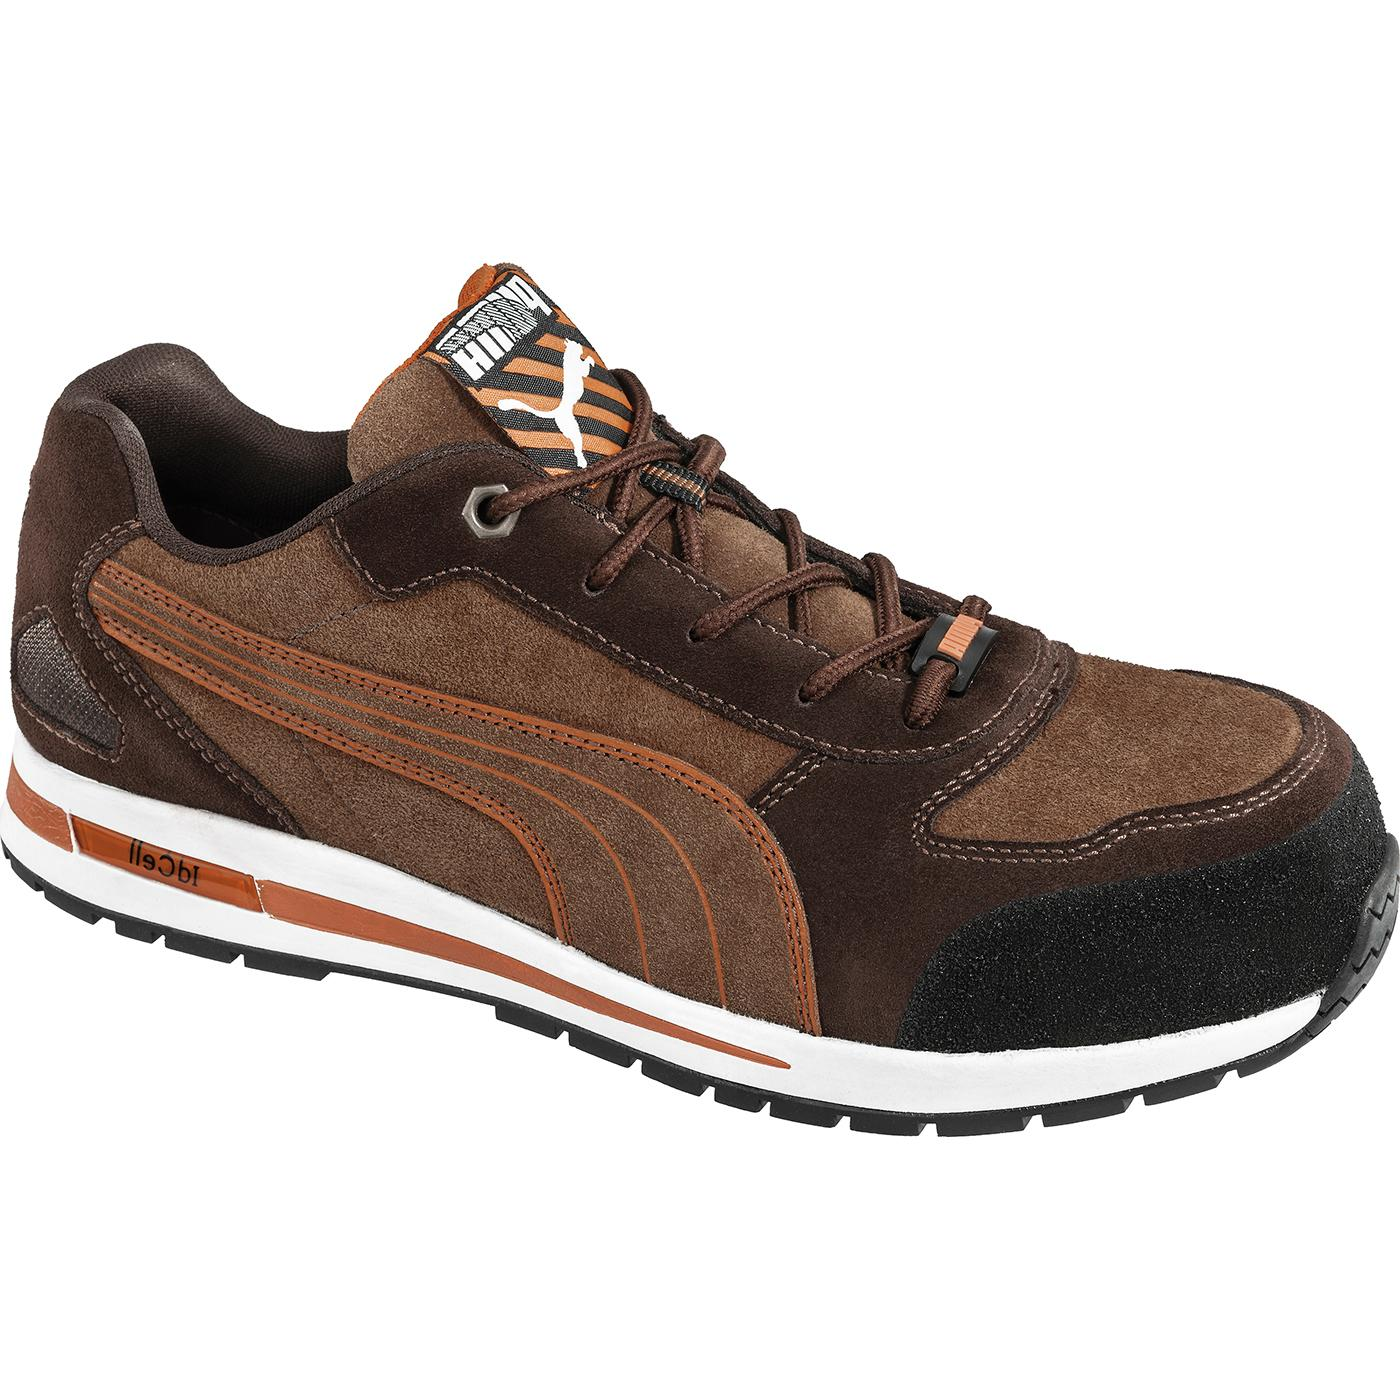 d15dc6b7bee0 Puma Urban Protect Barani Composite Toe Work ShoePuma Urban Protect Barani  Composite Toe Work Shoe